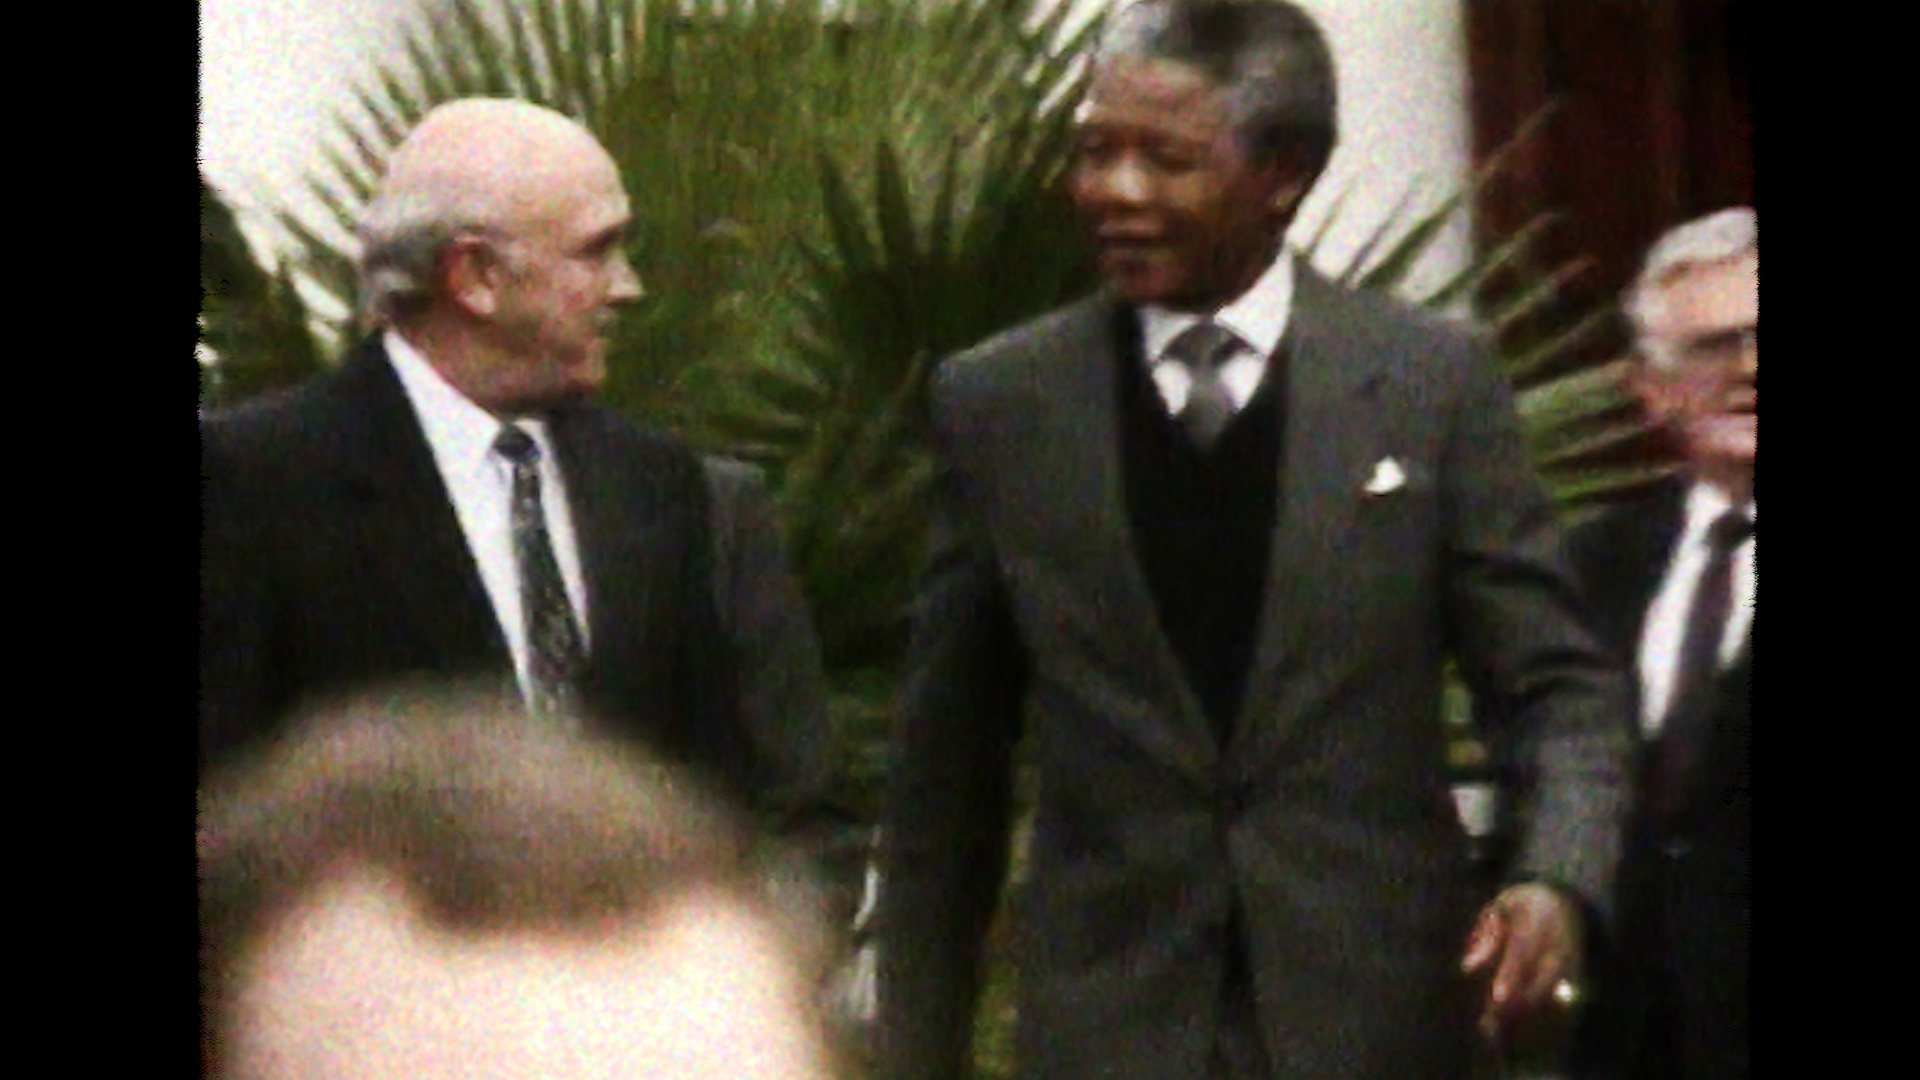 Mandela and de Klerk in 1993 after the Nobel Ceremony